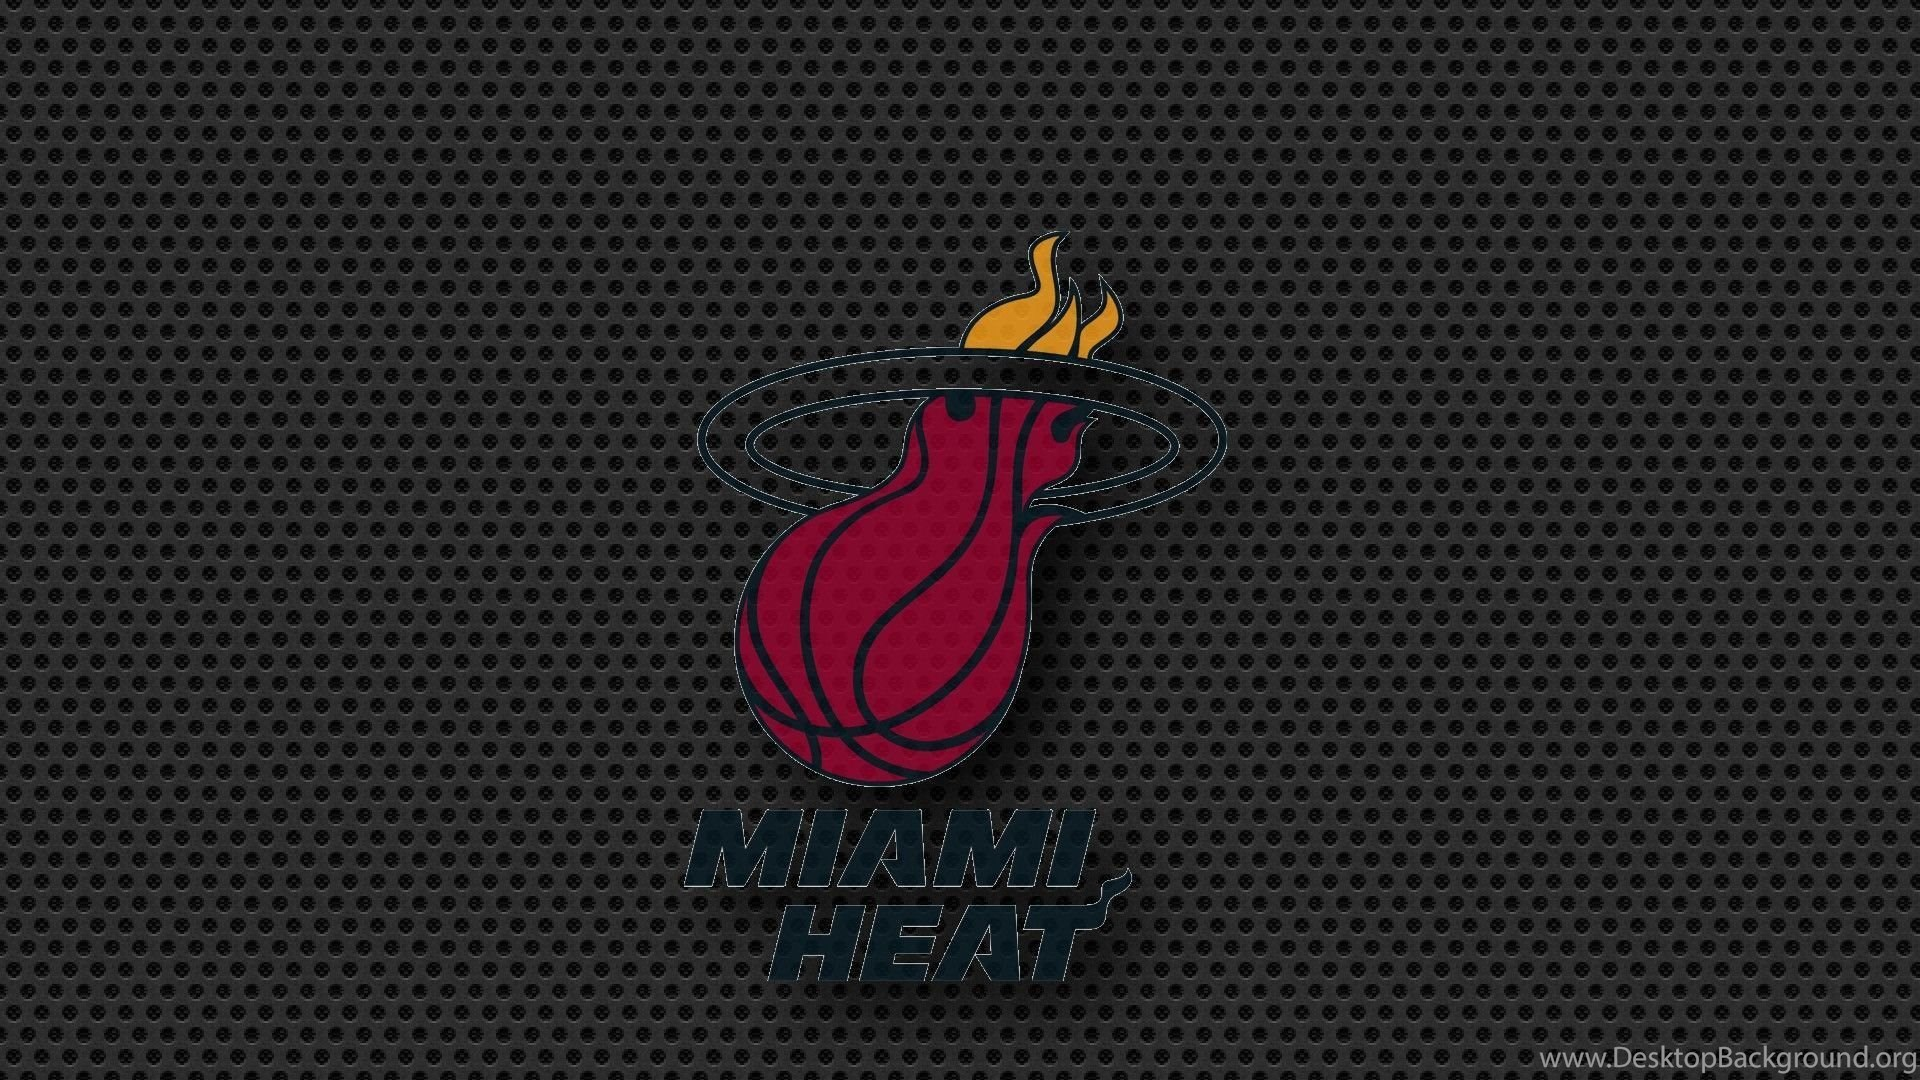 Miami Heat Wallpaper Jpg Desktop Background